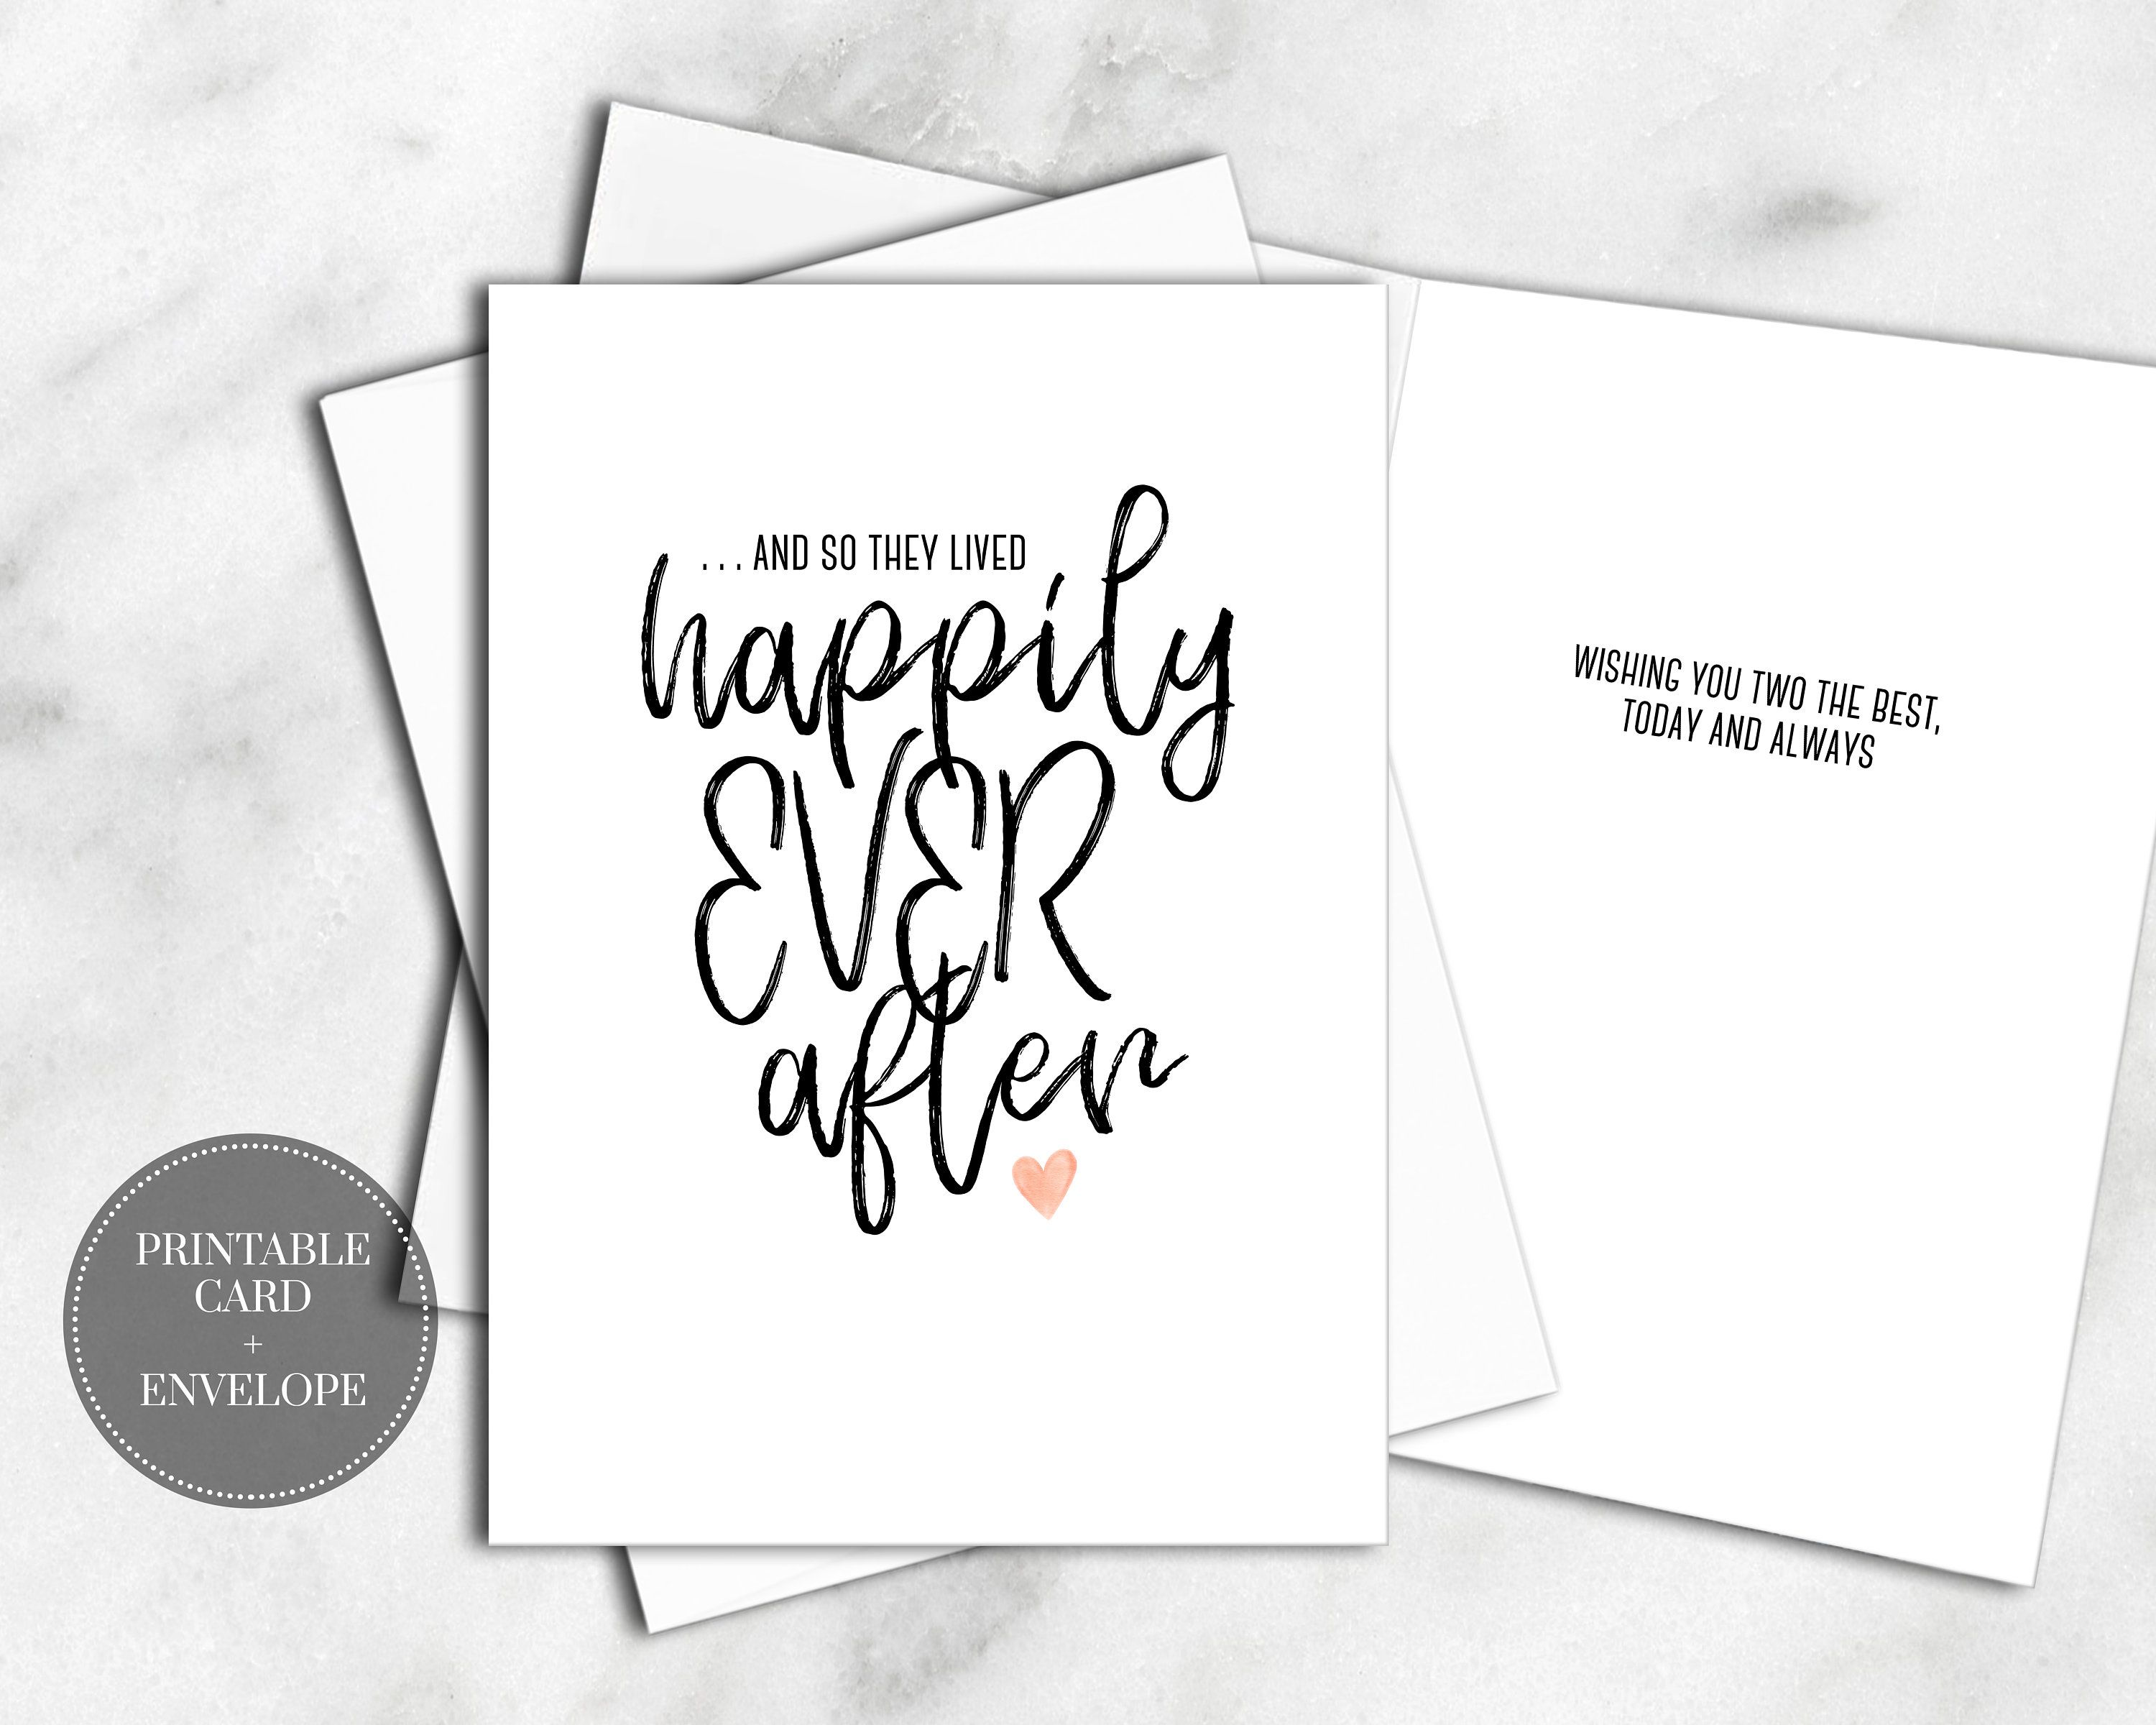 Printable Wedding Card Digital Download Wedding Gift Bridal Shower Gift For Bride Engagement Cards Wedding Cards Wedding Congratulations Card Wedding Card Diy